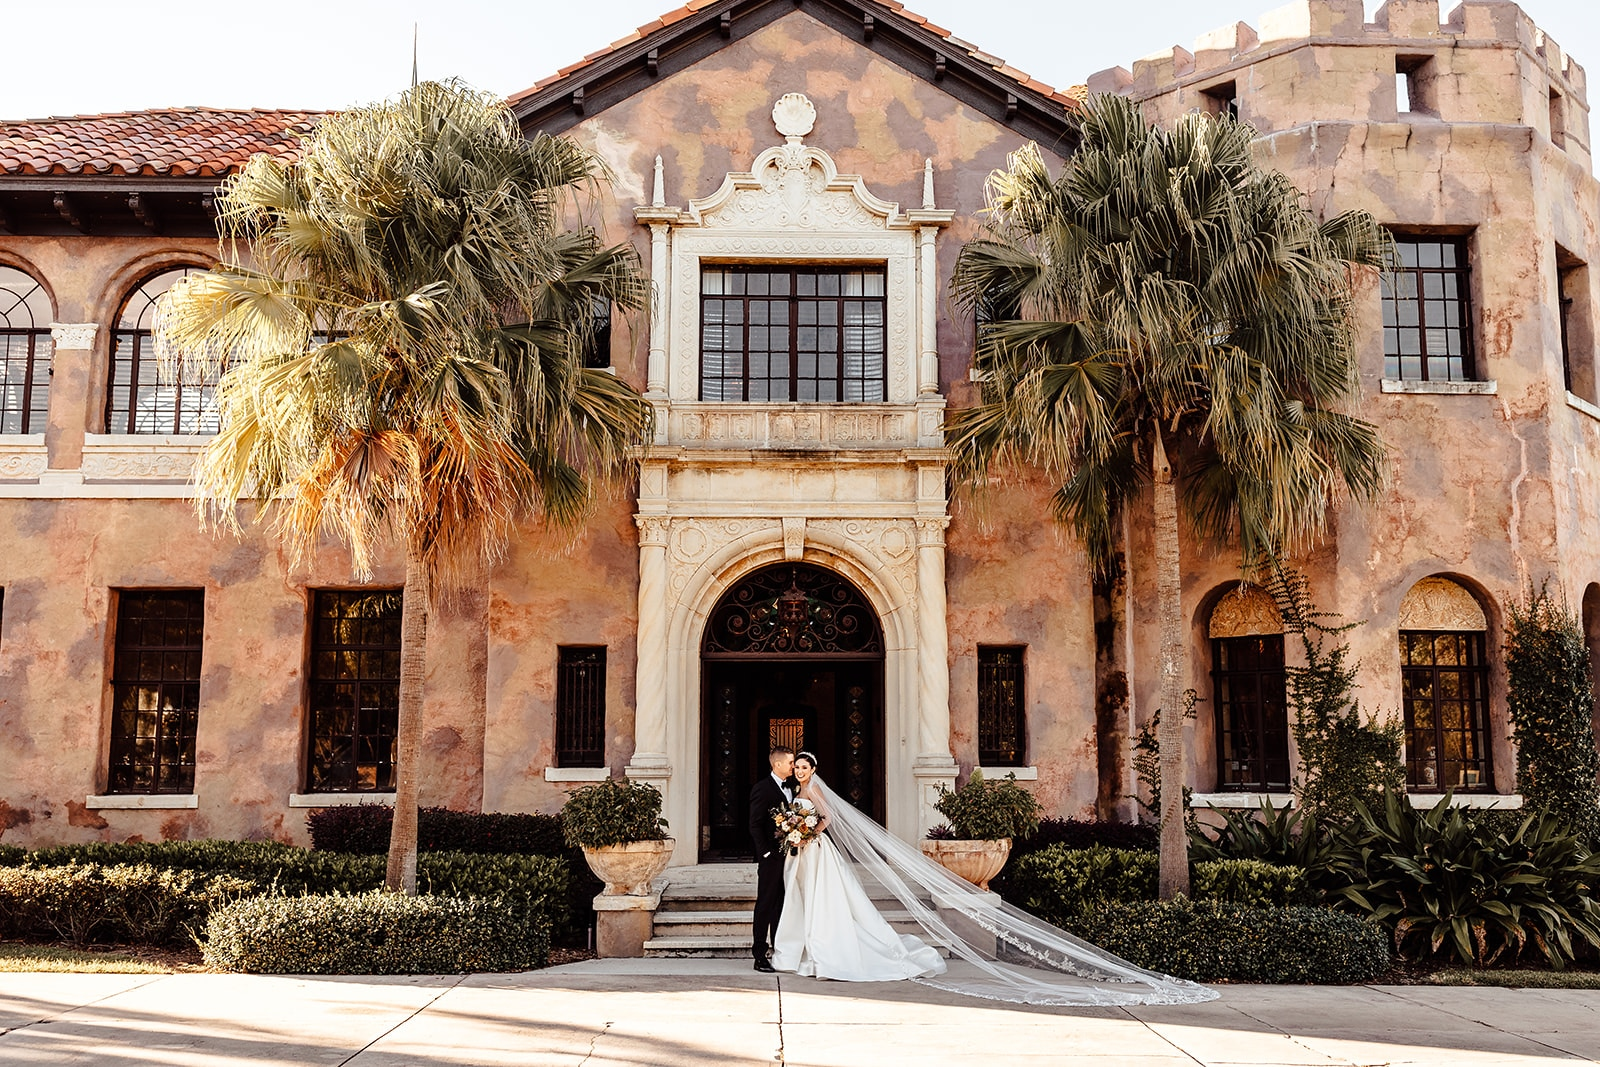 historic mansion with amazing architecture with two palm trees on either side of the front door with newlyweds in front center of the image